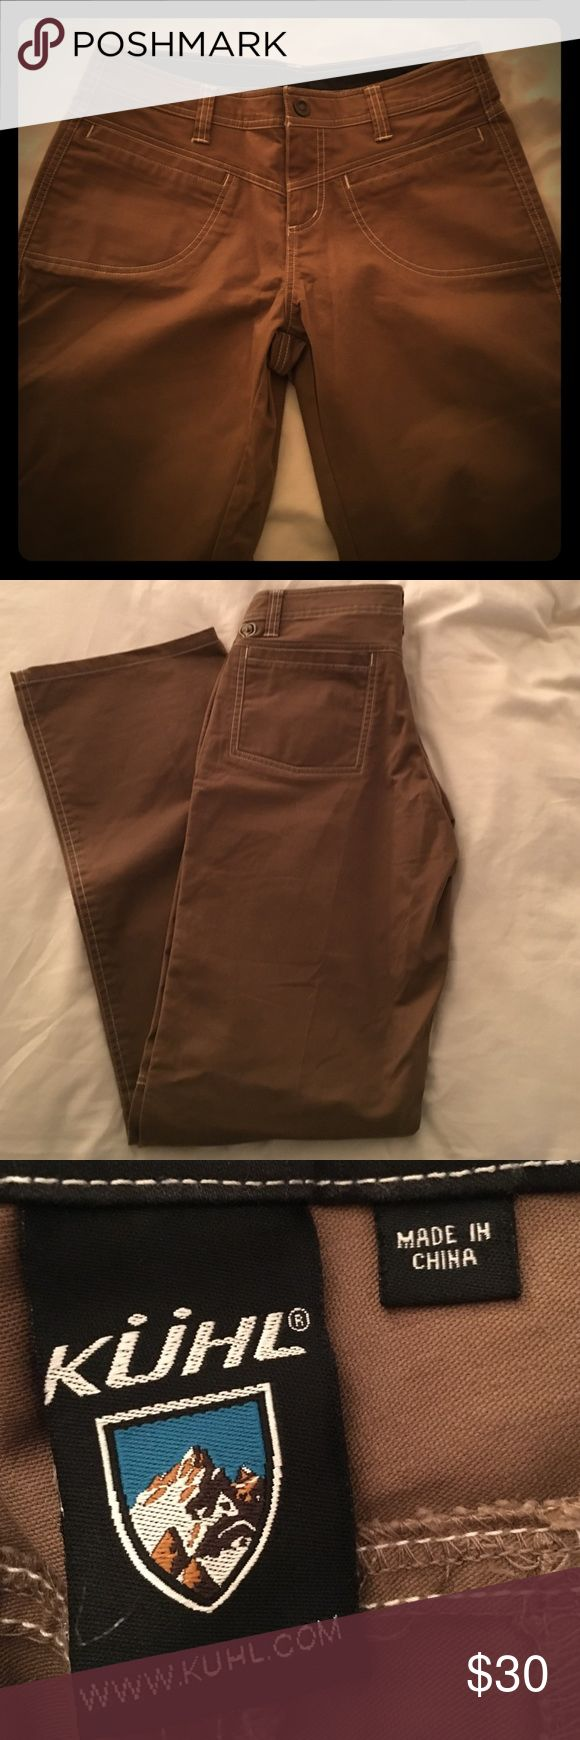 NWOT Kuhl outdoor pants Perfect for hiking and other outdoor activities all year round Kuhl Pants